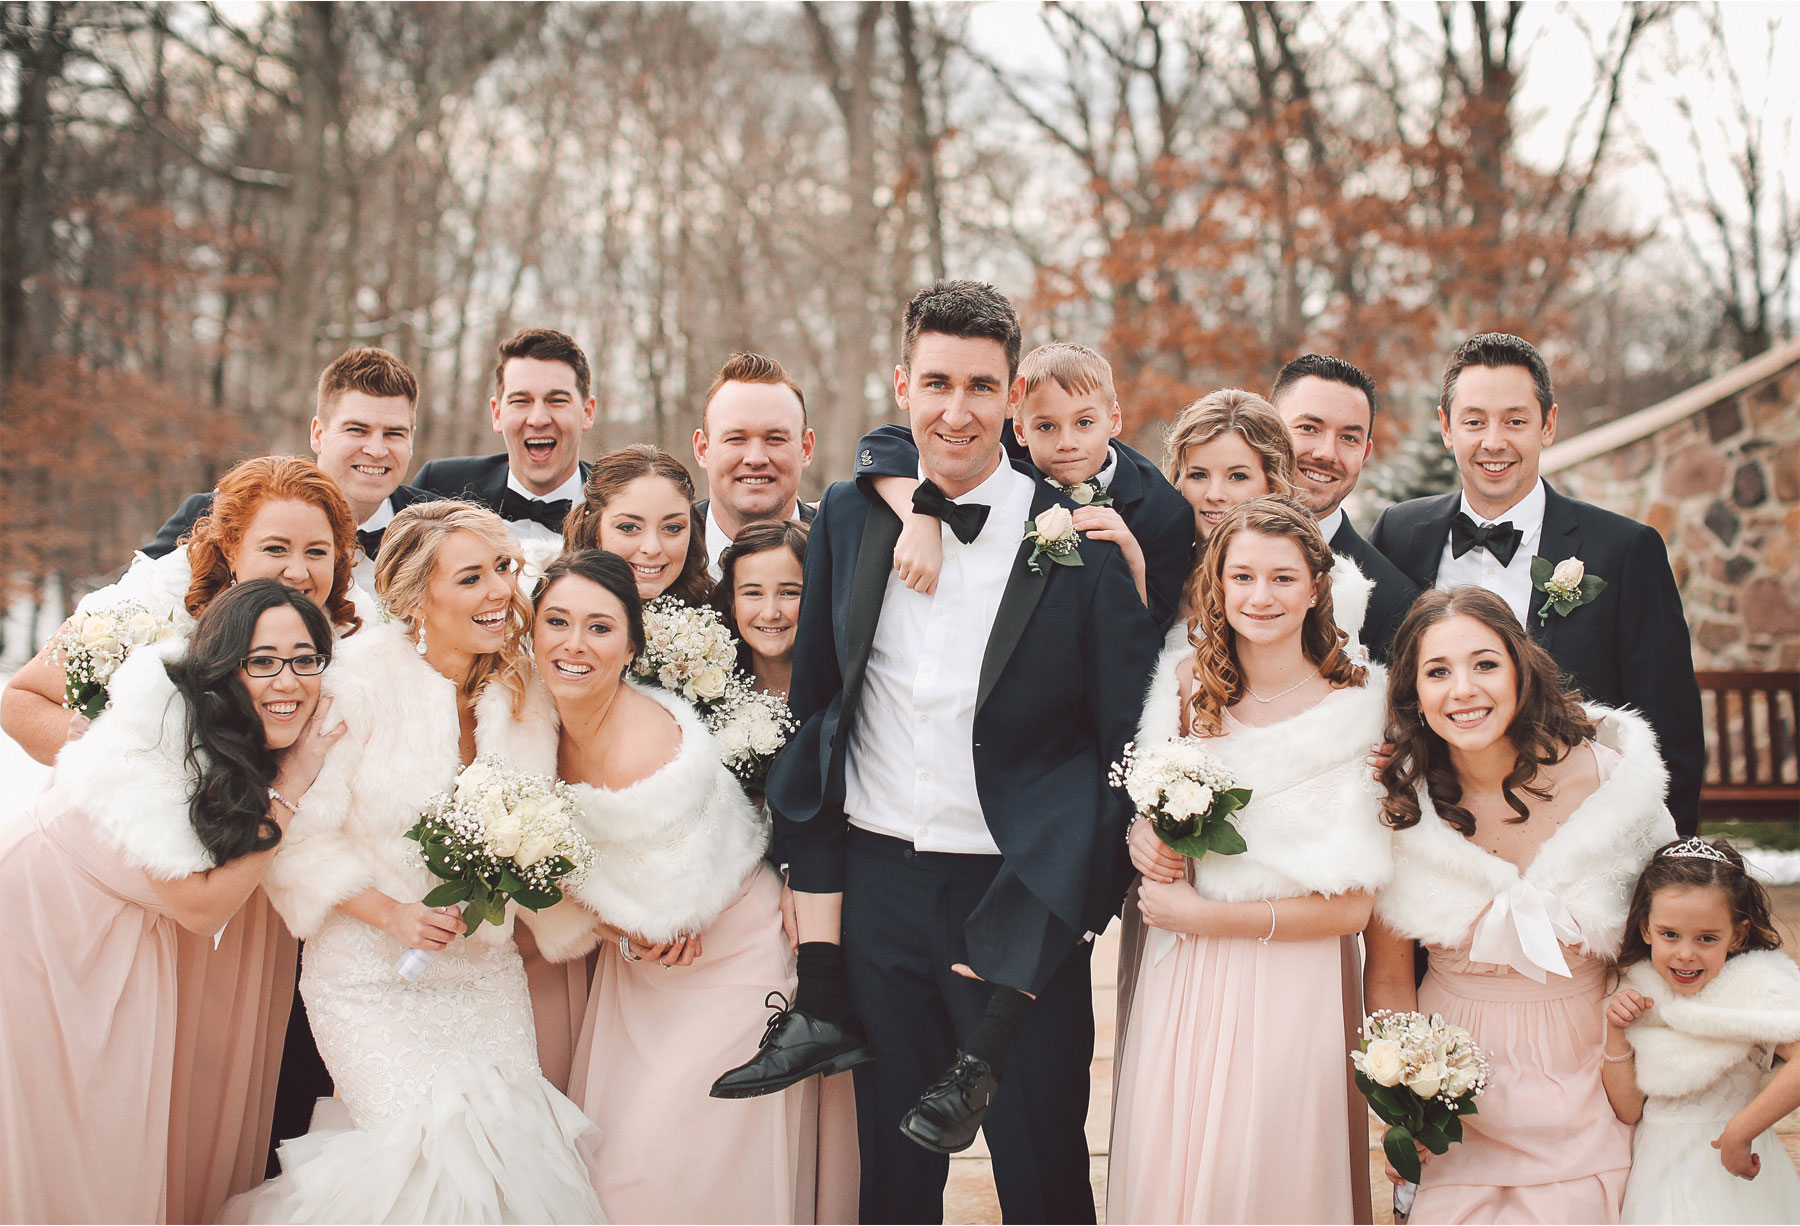 13-Watchung-New-Jersey-Wedding-Photographer-by-Andrew-Vick-Photography-Winter-Saint-Marys-Chuch-Stony-Hill-Bride-Groom-Bridal-Party-Bridesmaids-Groomsmen-Ring-Bearer-Flower-Girl-Fur-Coat-Shrug-Vintage-Alexia-and-Justin.jpg